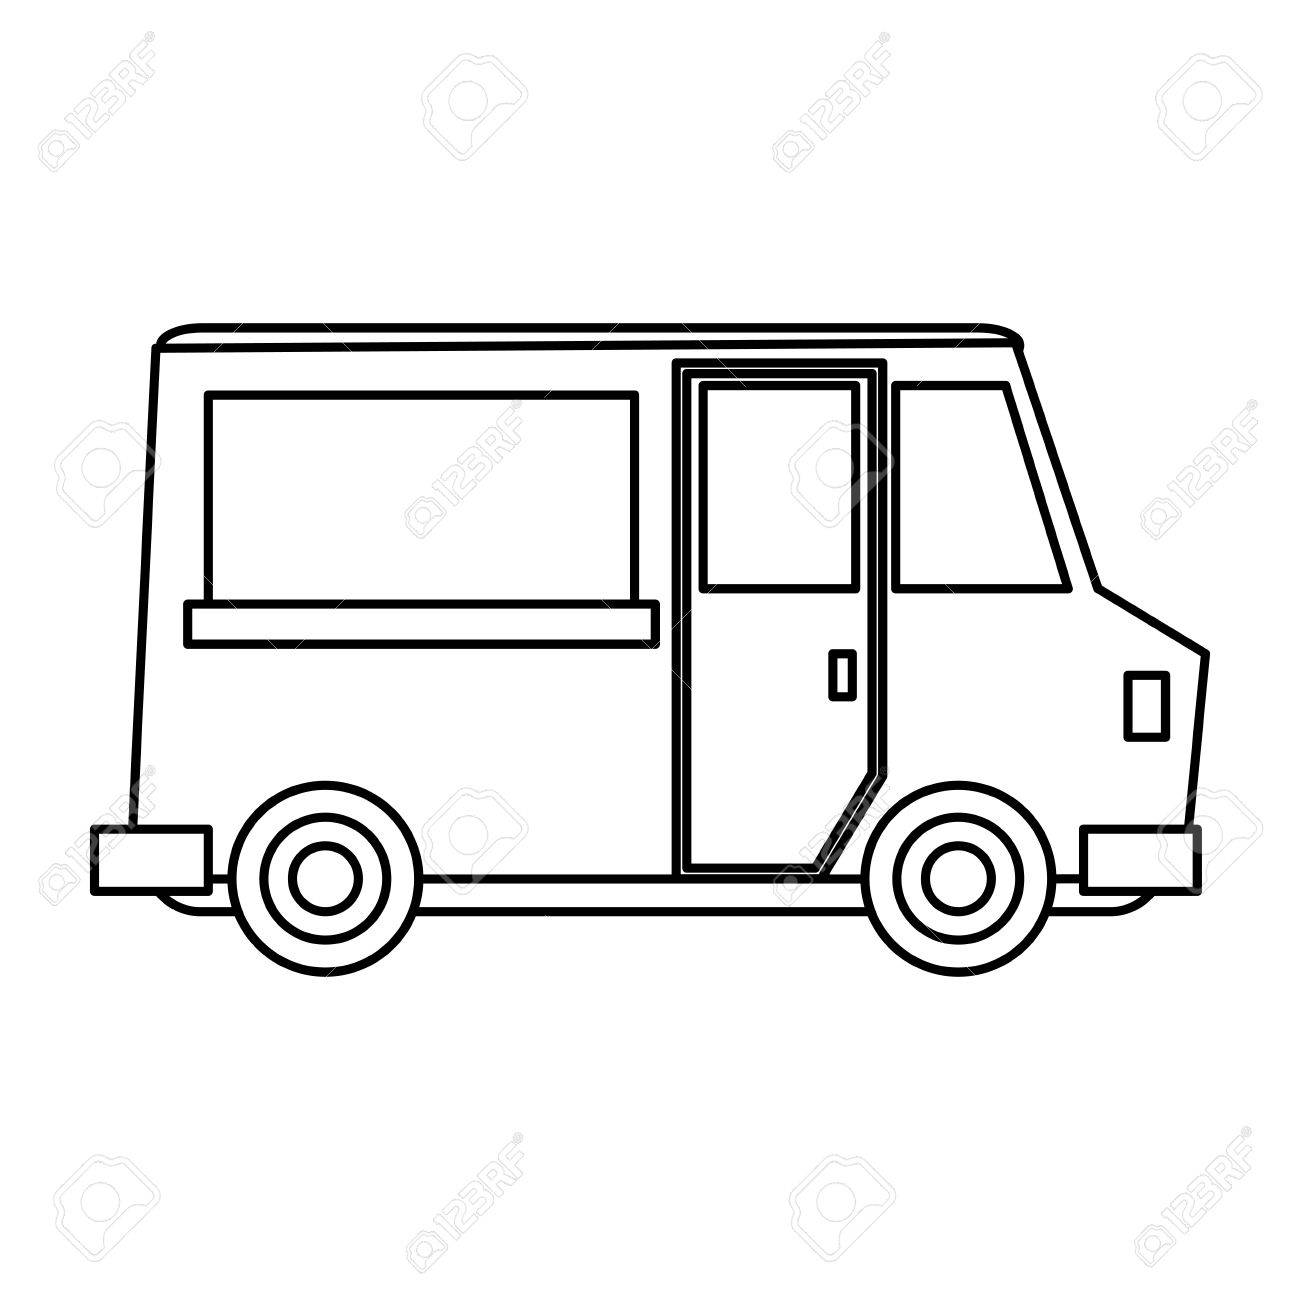 Food Truck Icon Image Vector Illustration Design Black Line Stock